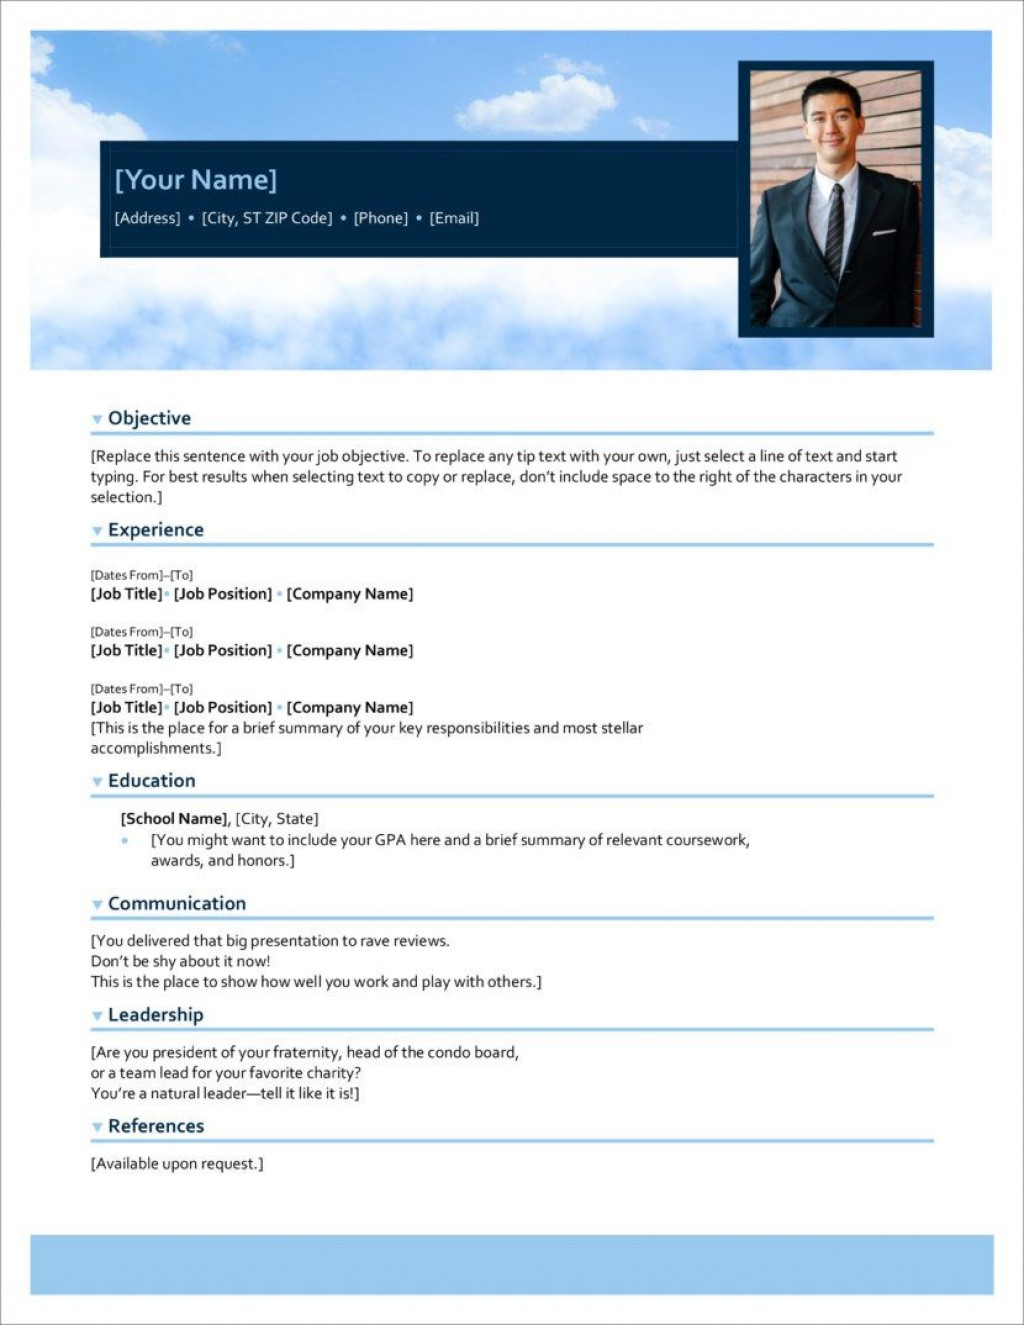 004 Exceptional Resume Template For Microsoft Word 2007 Free Sample  Download OfficeLarge